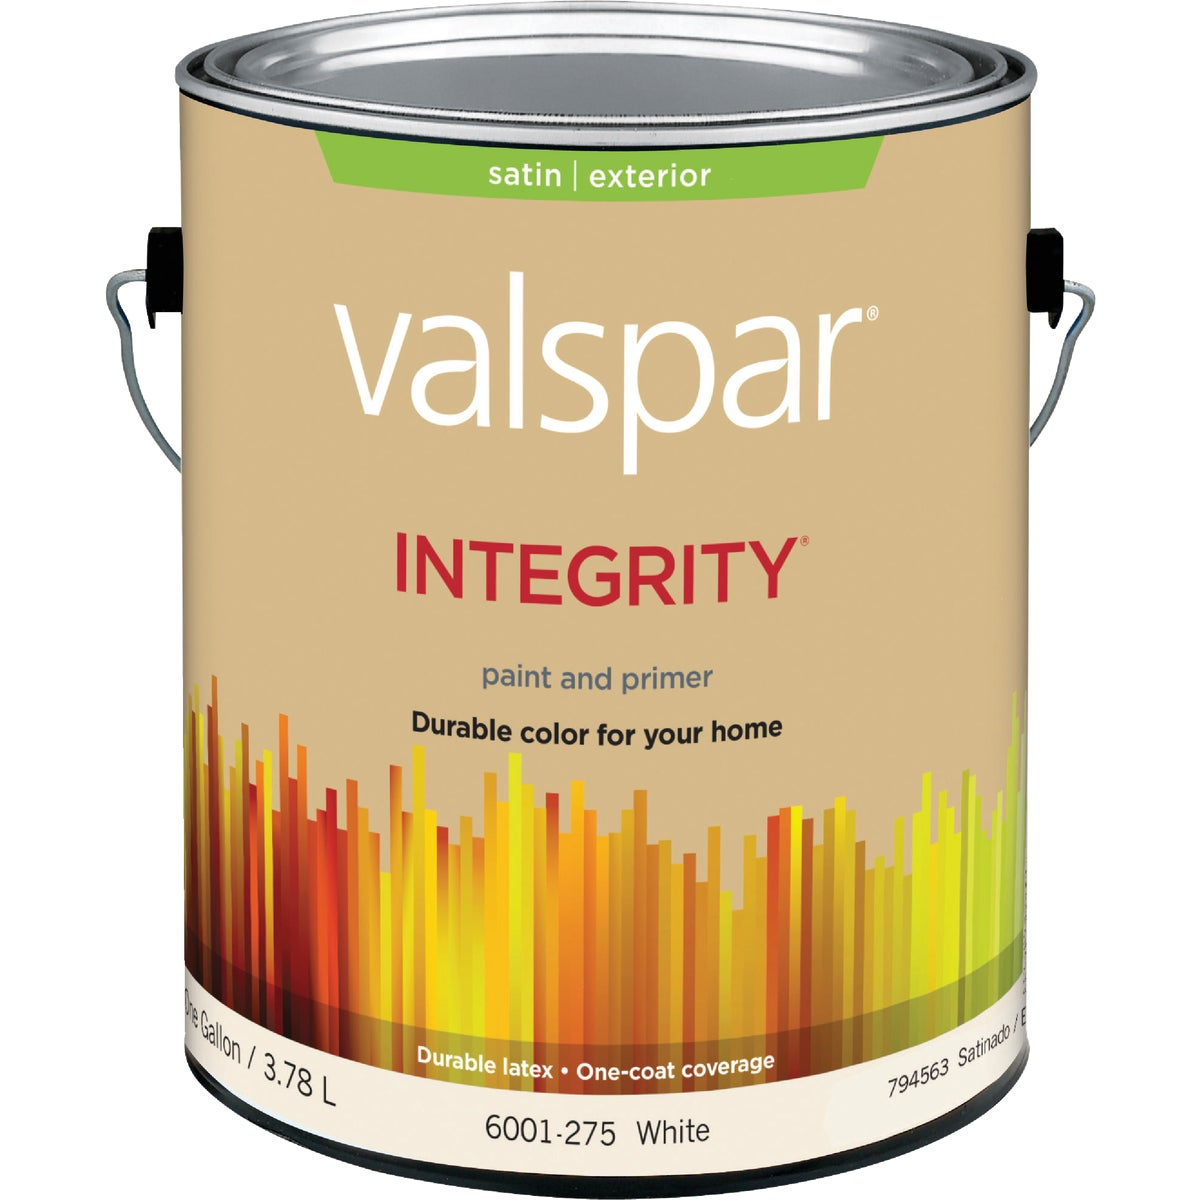 EXT SAT WHITE PAINT - 004.6001275.007 by Valspar Corp